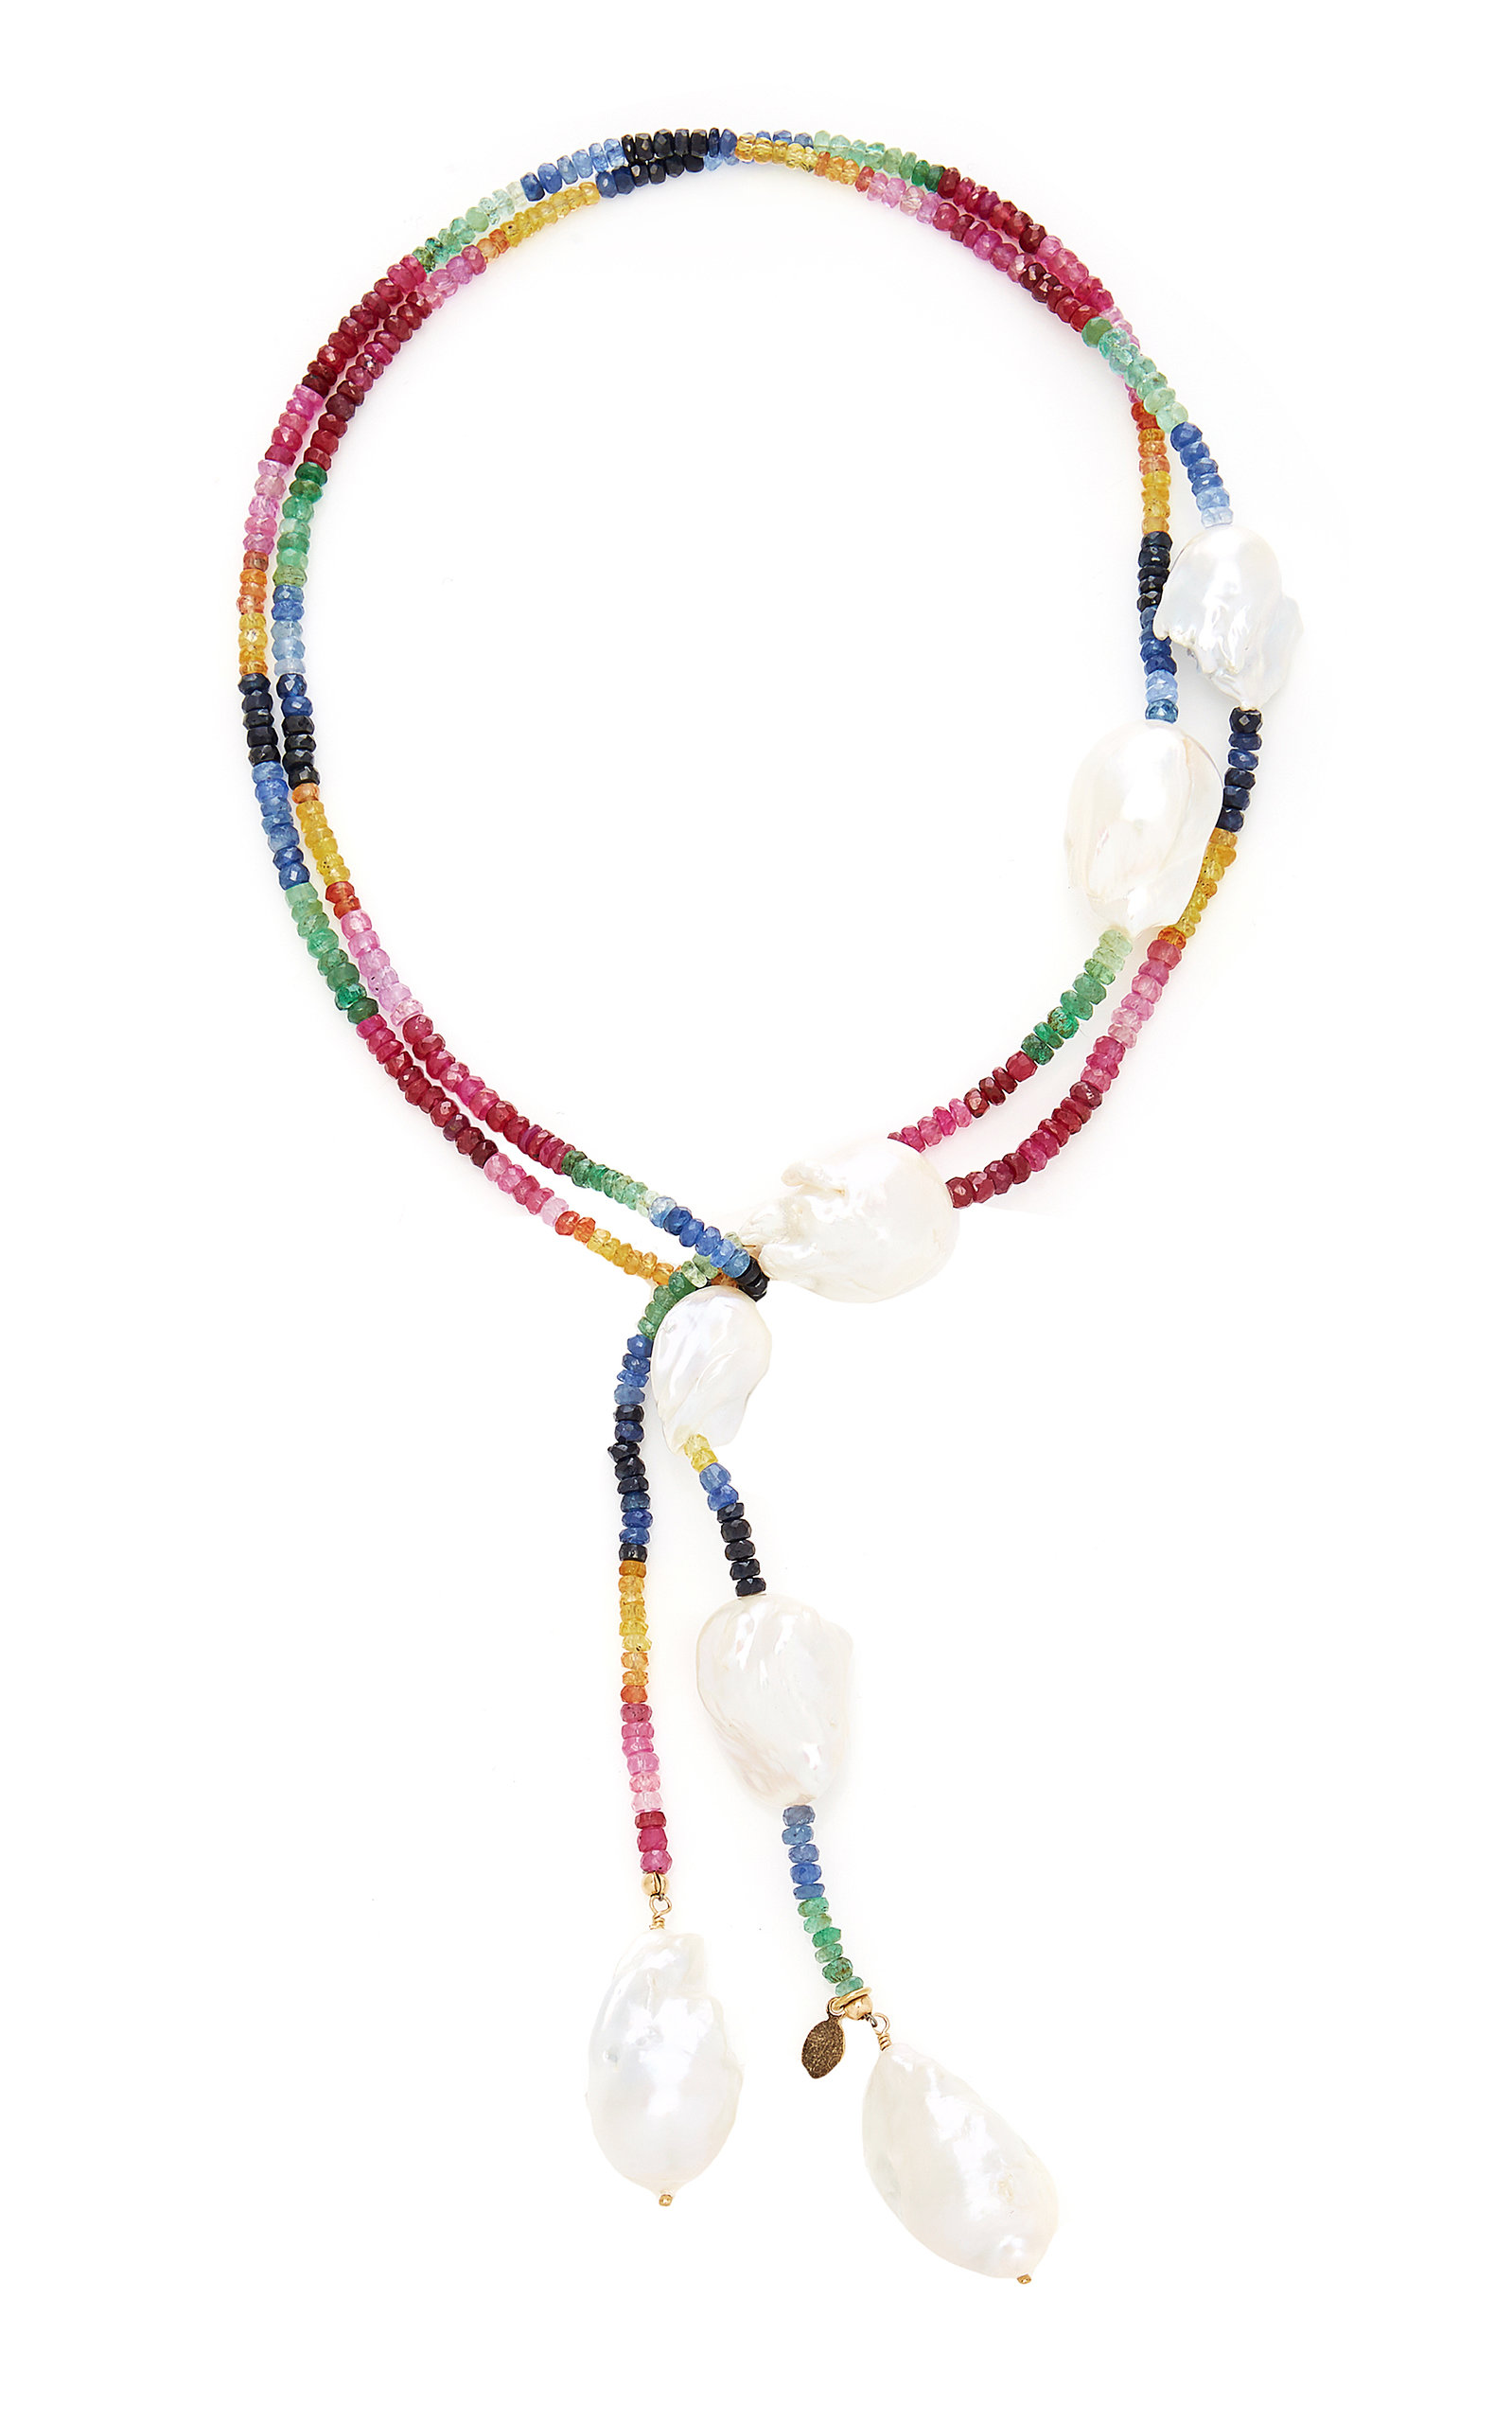 Women's Gold-Filled Ruby; Emerald and Sapphire and Pearl Necklace